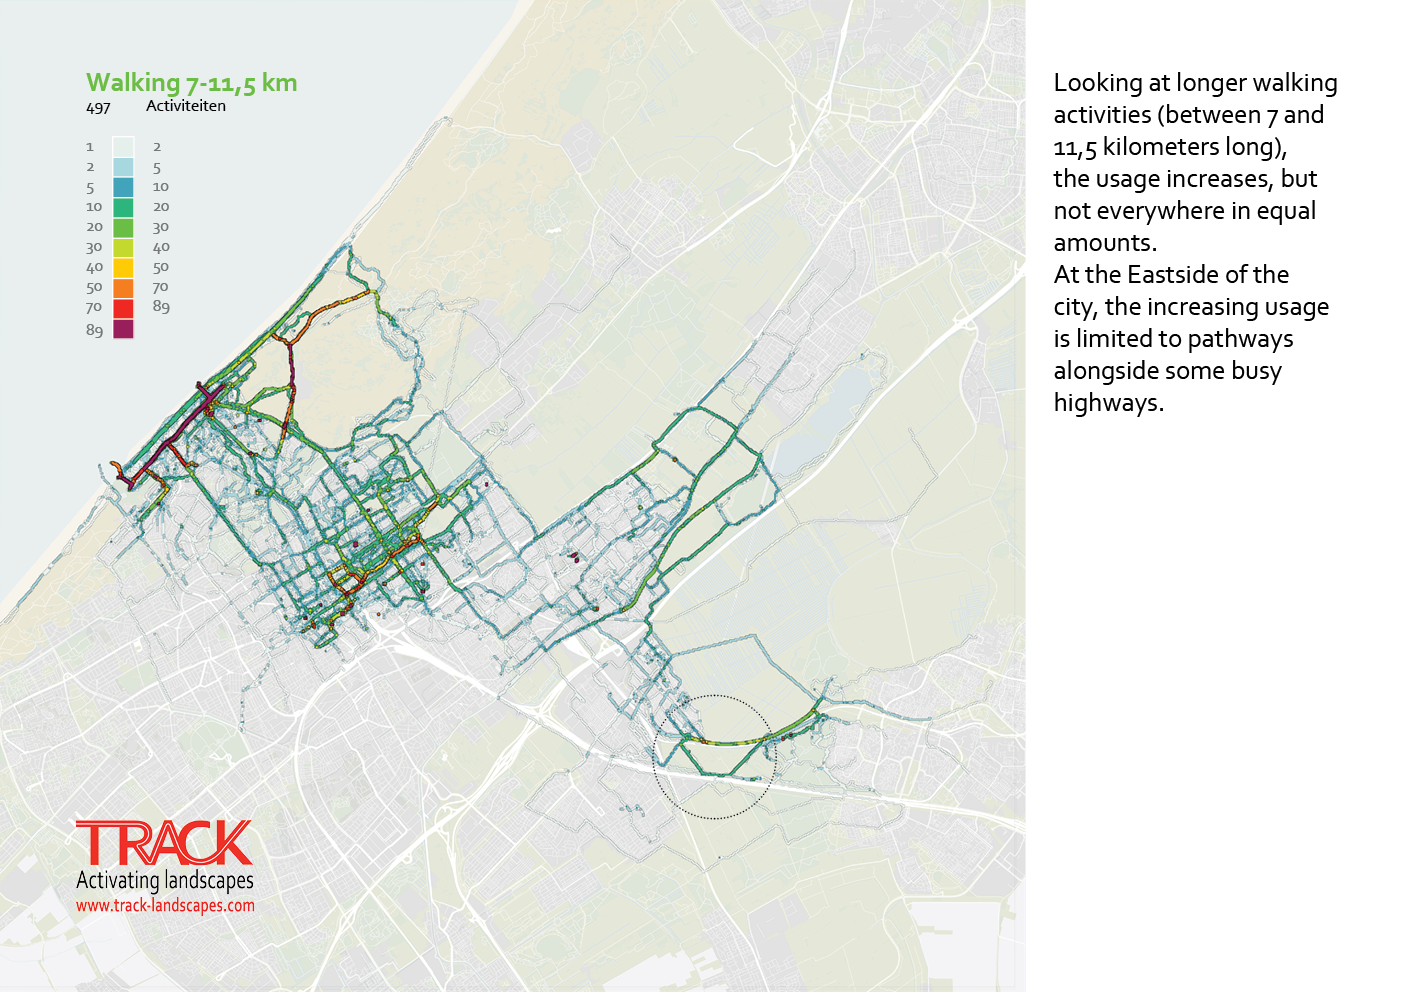 The Hague walking data